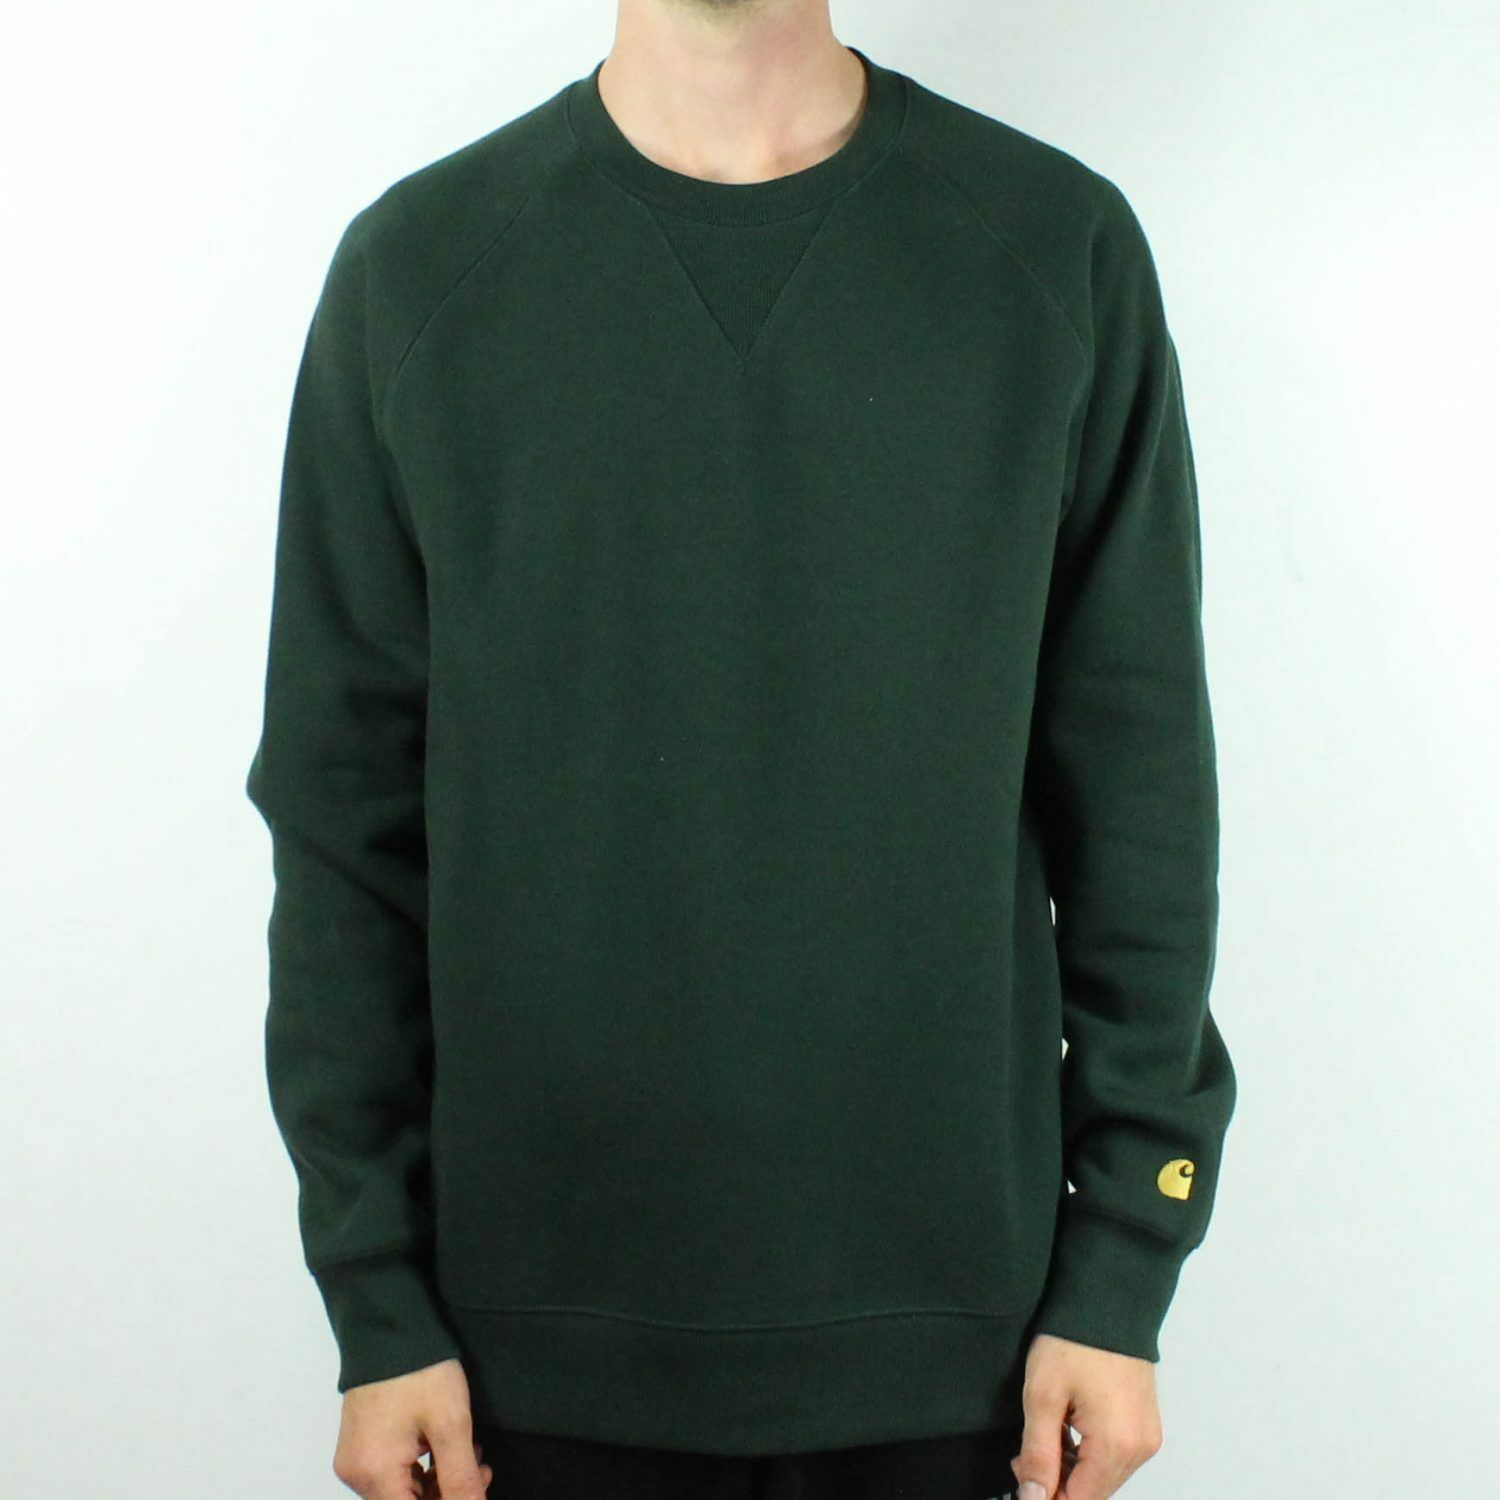 so cheap 100% high quality clearance sale Details about Carhartt Chase Sweatshirt Pullover Jumper in Loden Green/Gold  in sizes S,M,L